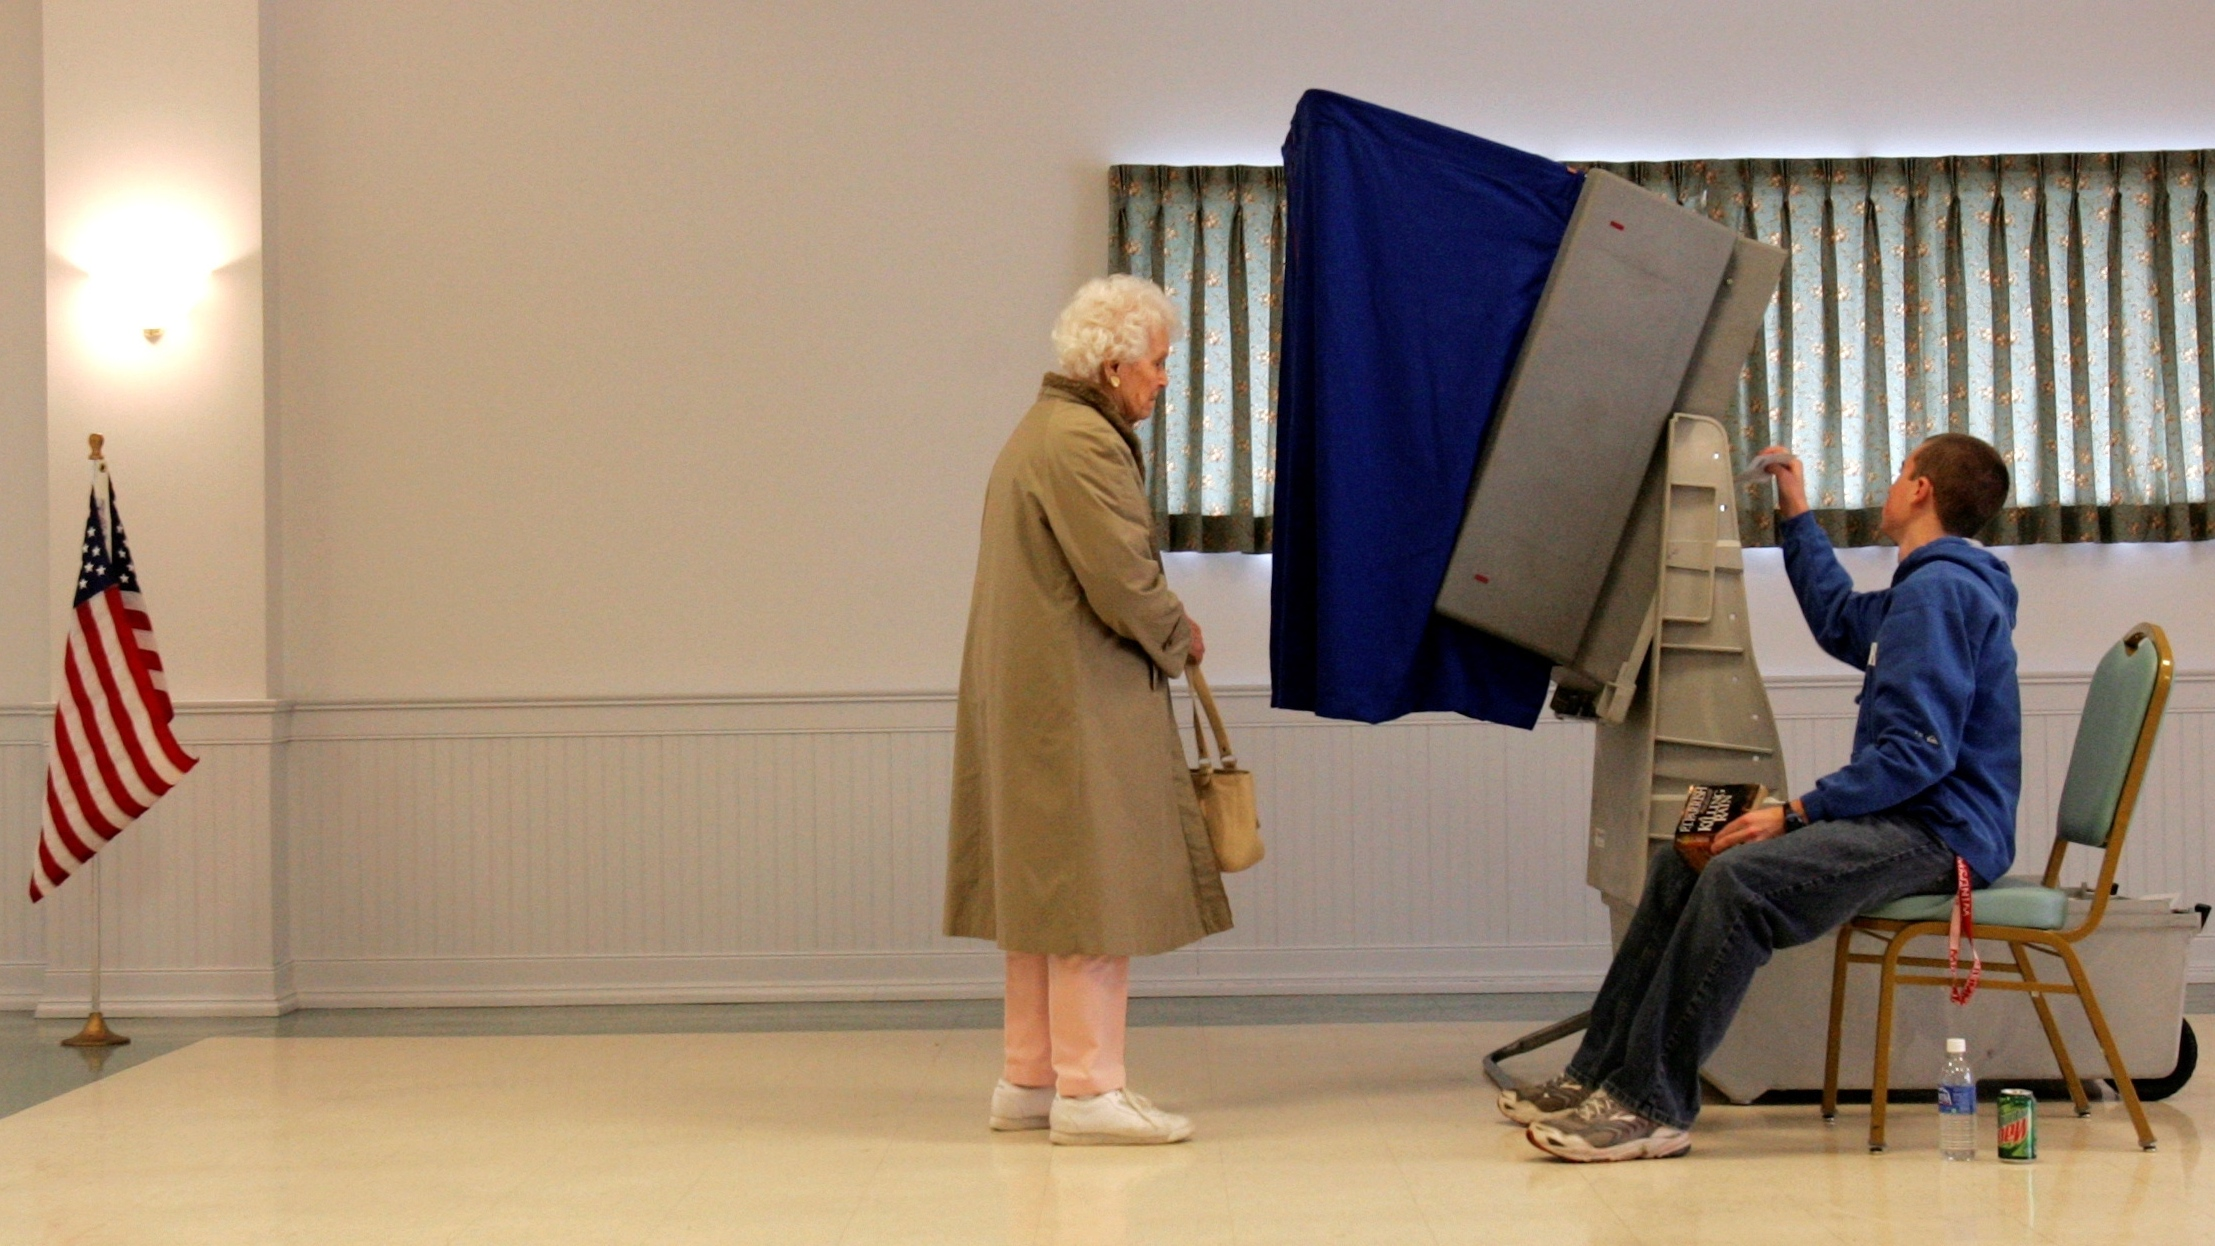 An election worker resets a voting machine as a voter waits in 2008. Many of the country's machines were replaced after the 2000 election, but are now reaching the end of their useful lives. (Photo by Rob Carr/AP)